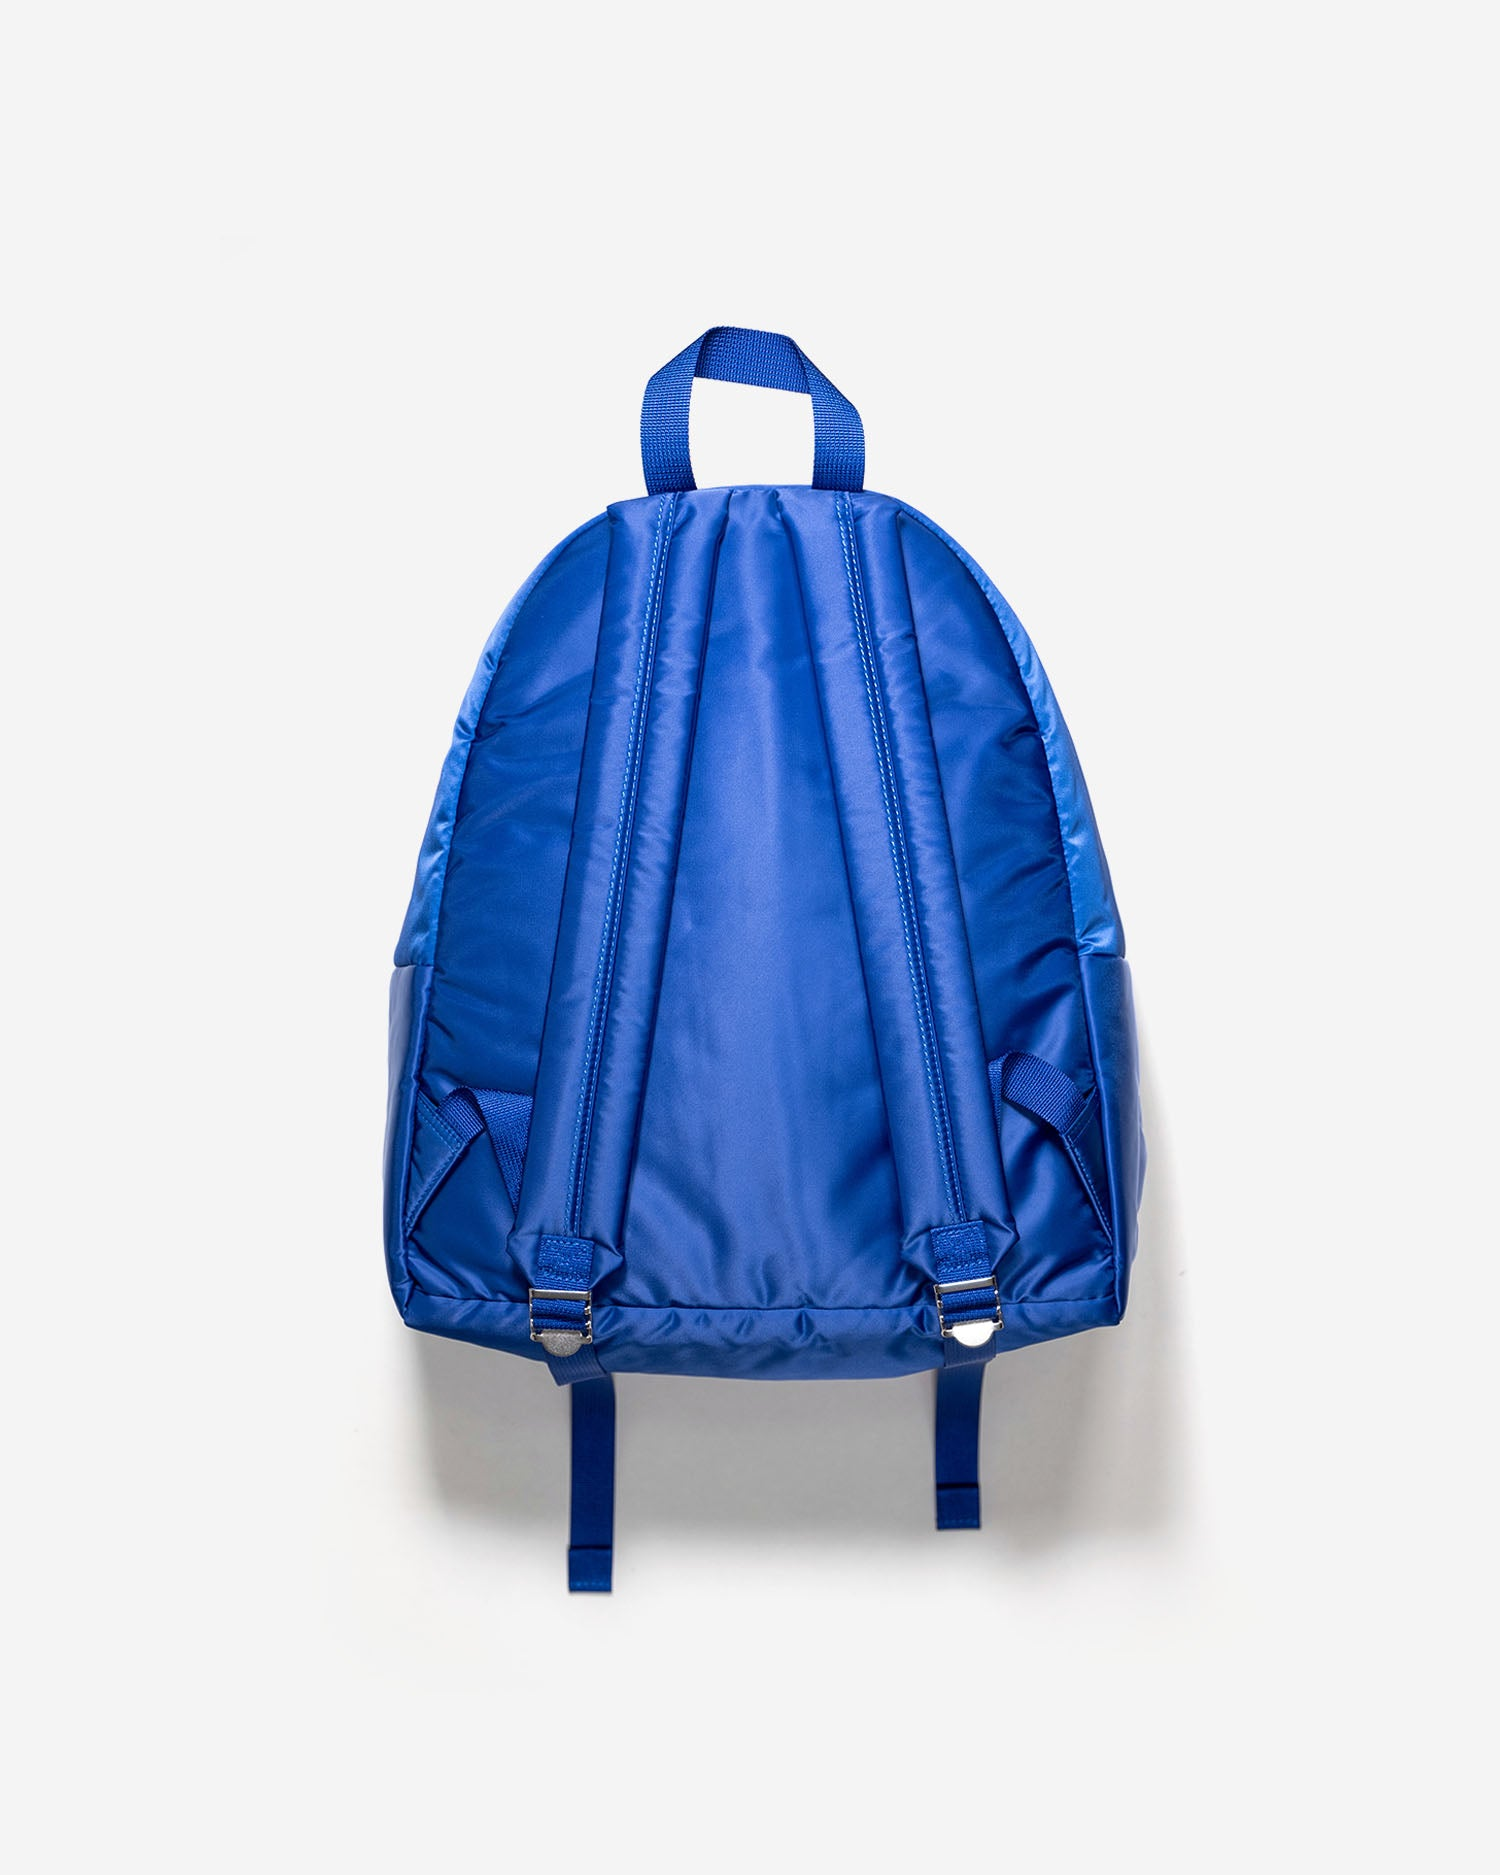 Études x Porter Day Pack